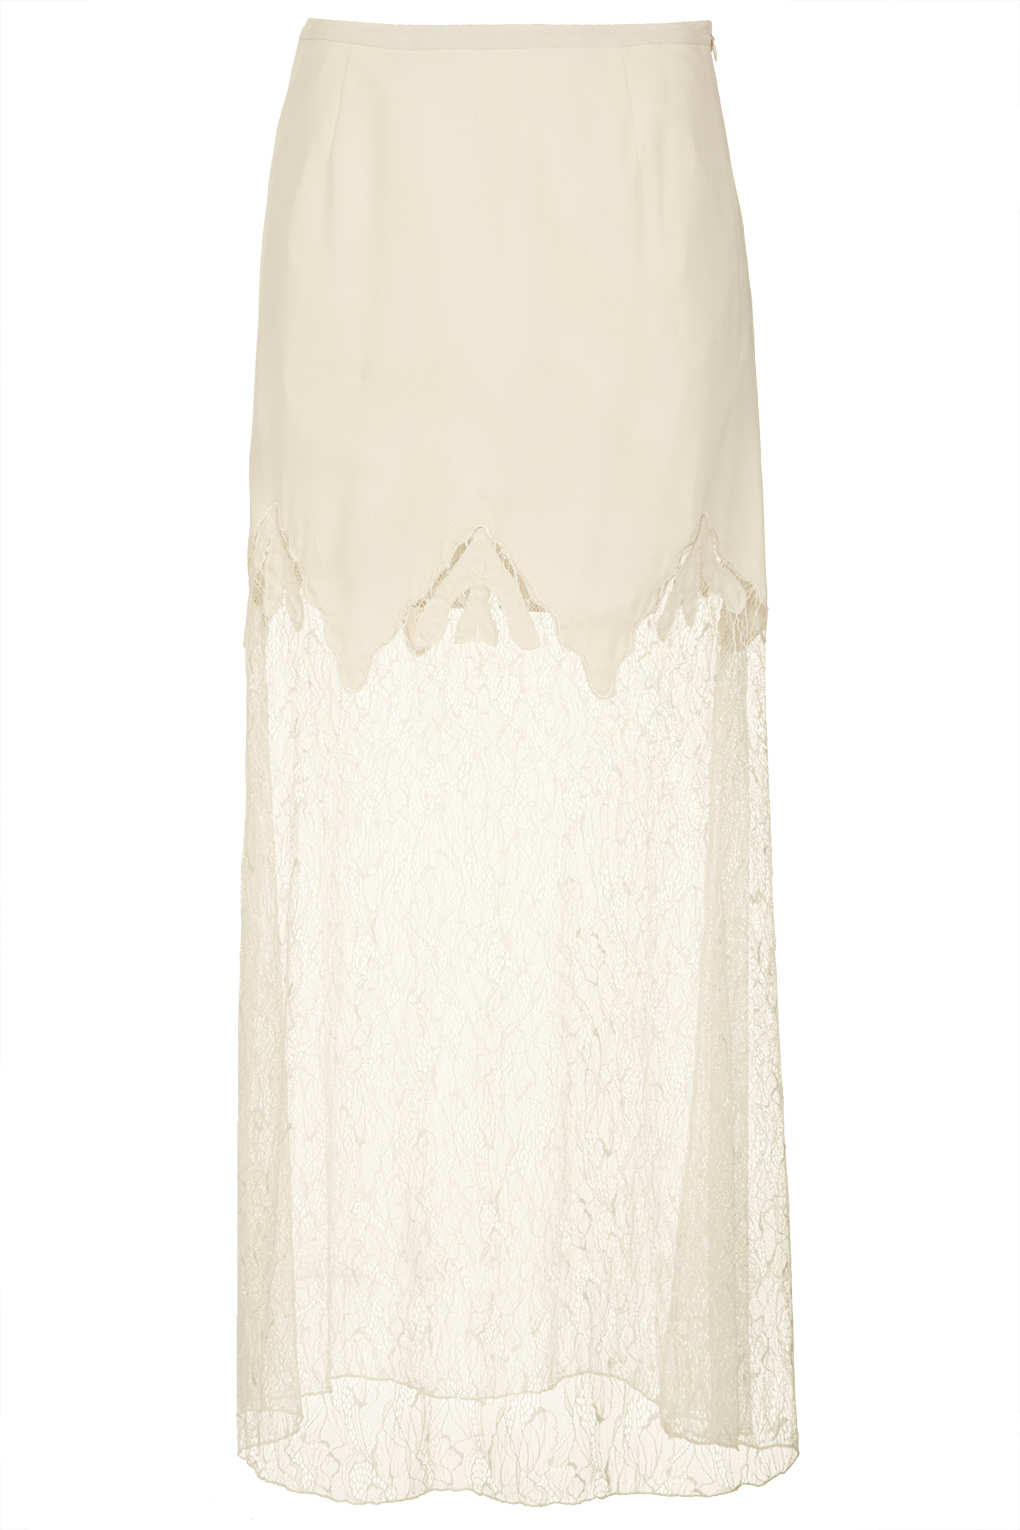 Topshop Cream Lace Maxi Skirt in Natural | Lyst